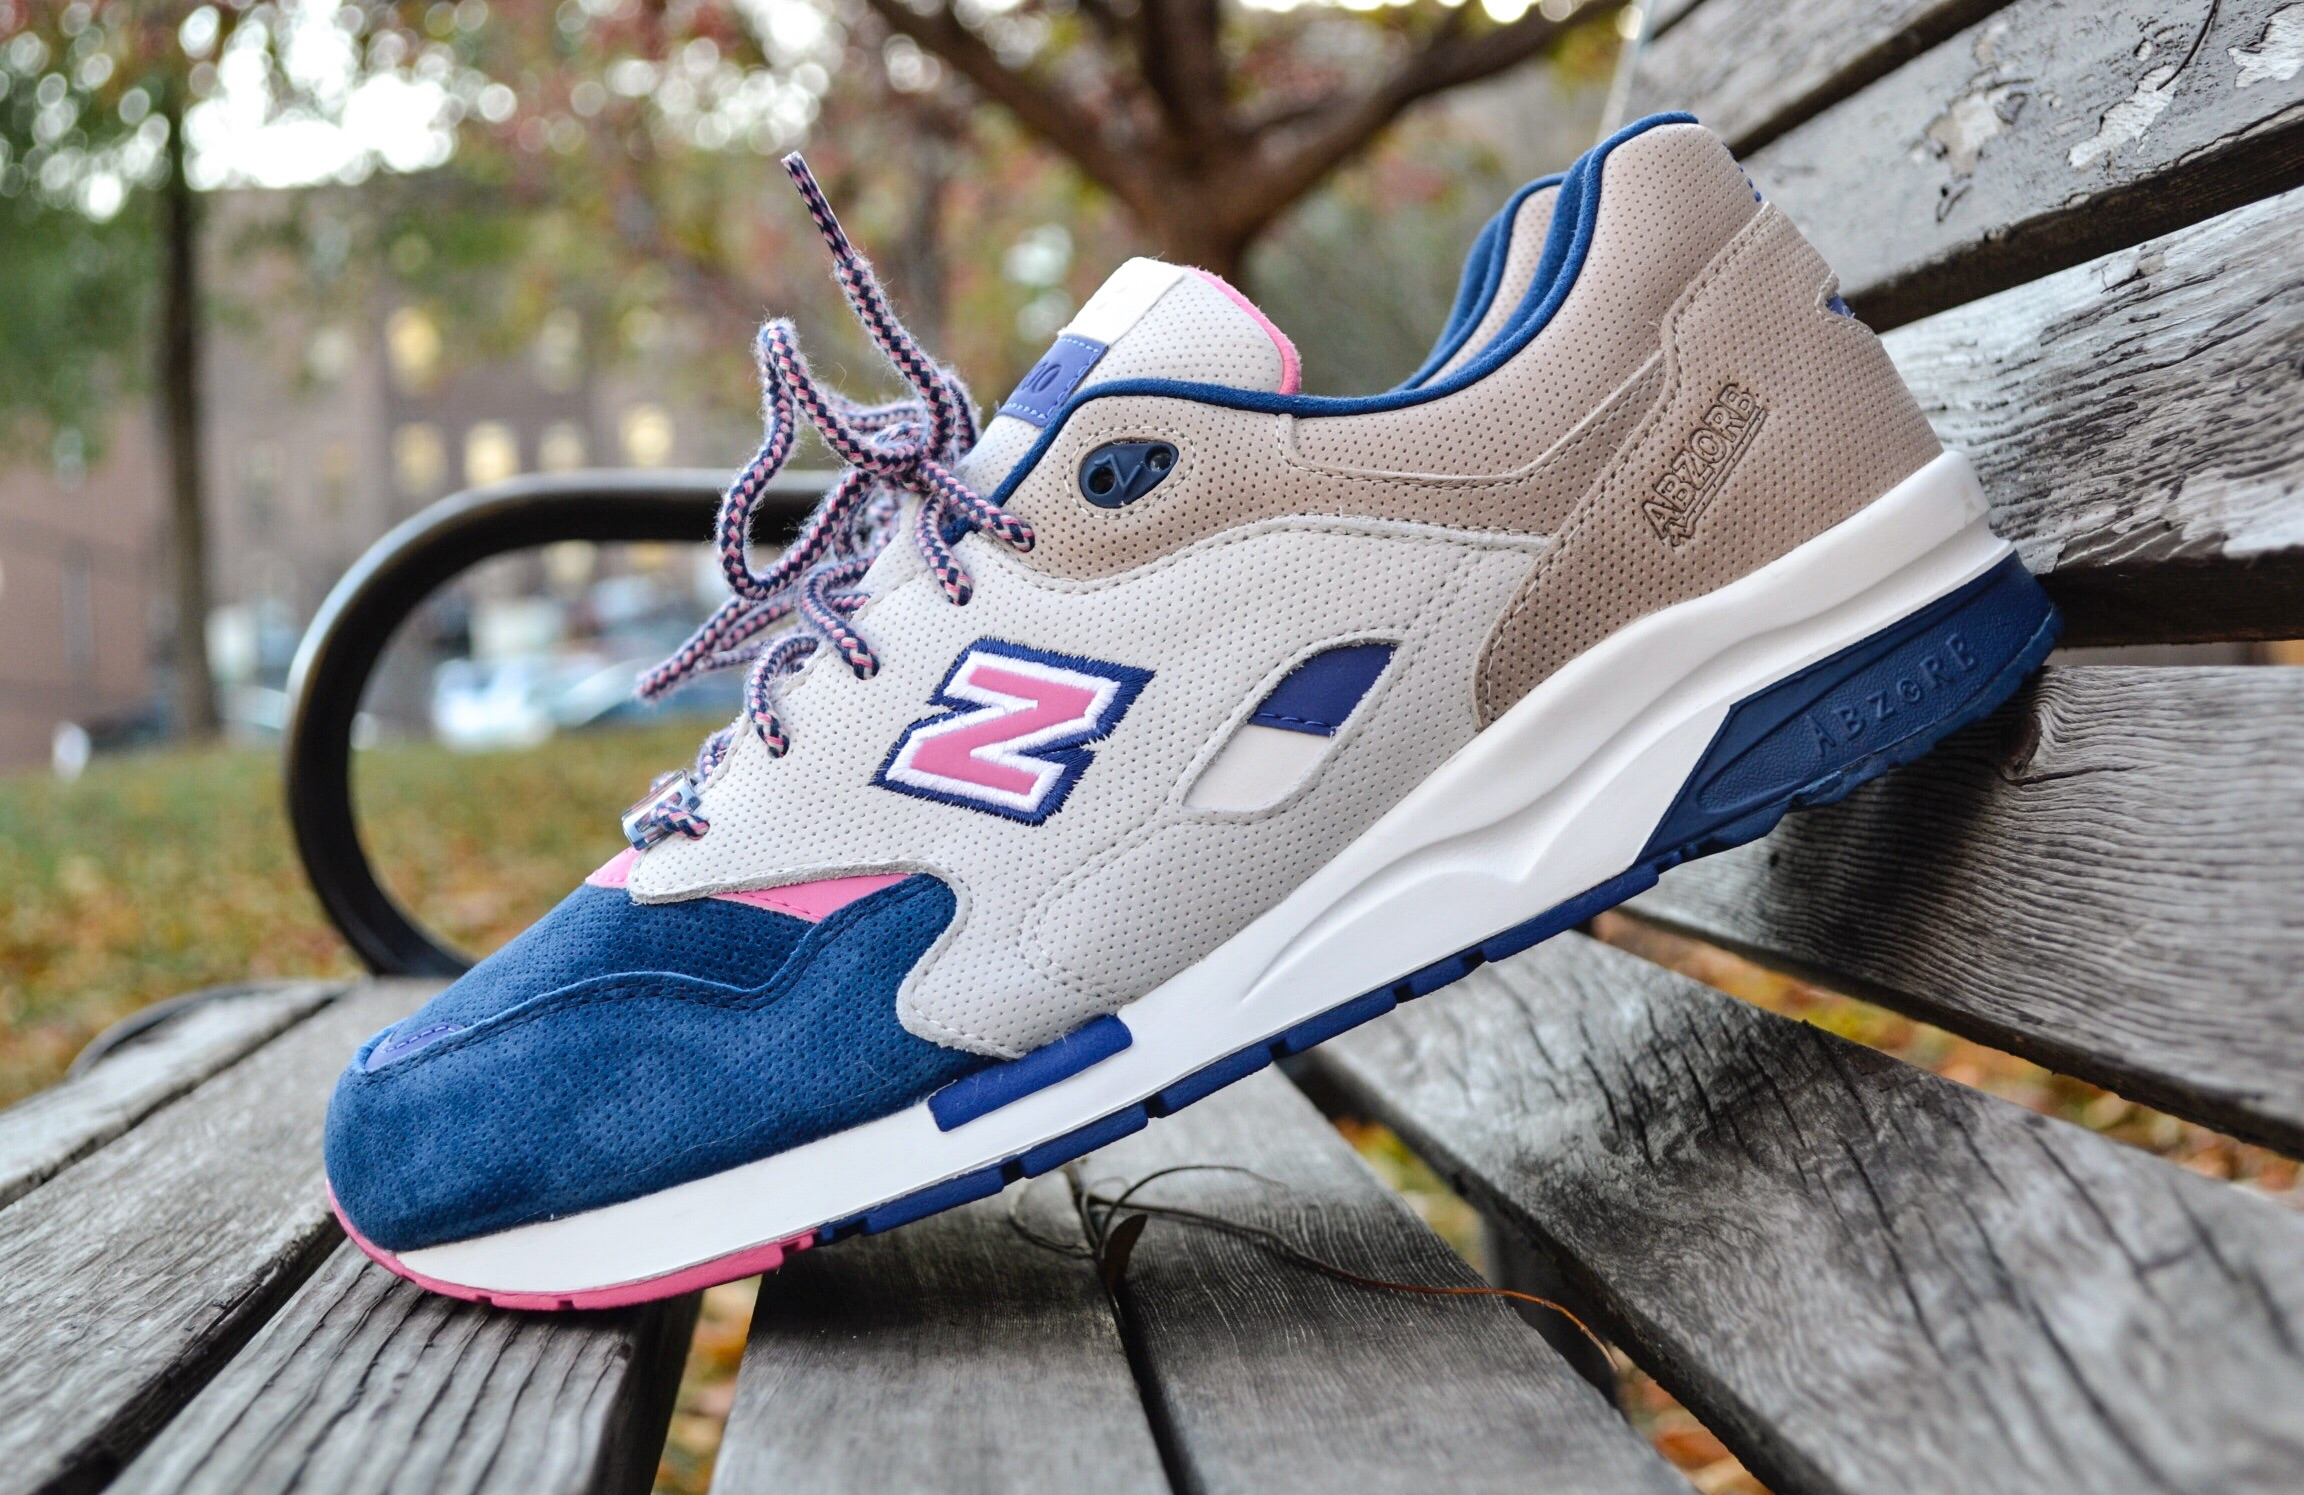 """The Ronnie Fieg x New Balance 1600 """"Daytona"""" uses a combination of plush suedes and leathers along with reflective 3M hits to make this sneaker a must have for sneakerheads last year on Black Friday."""